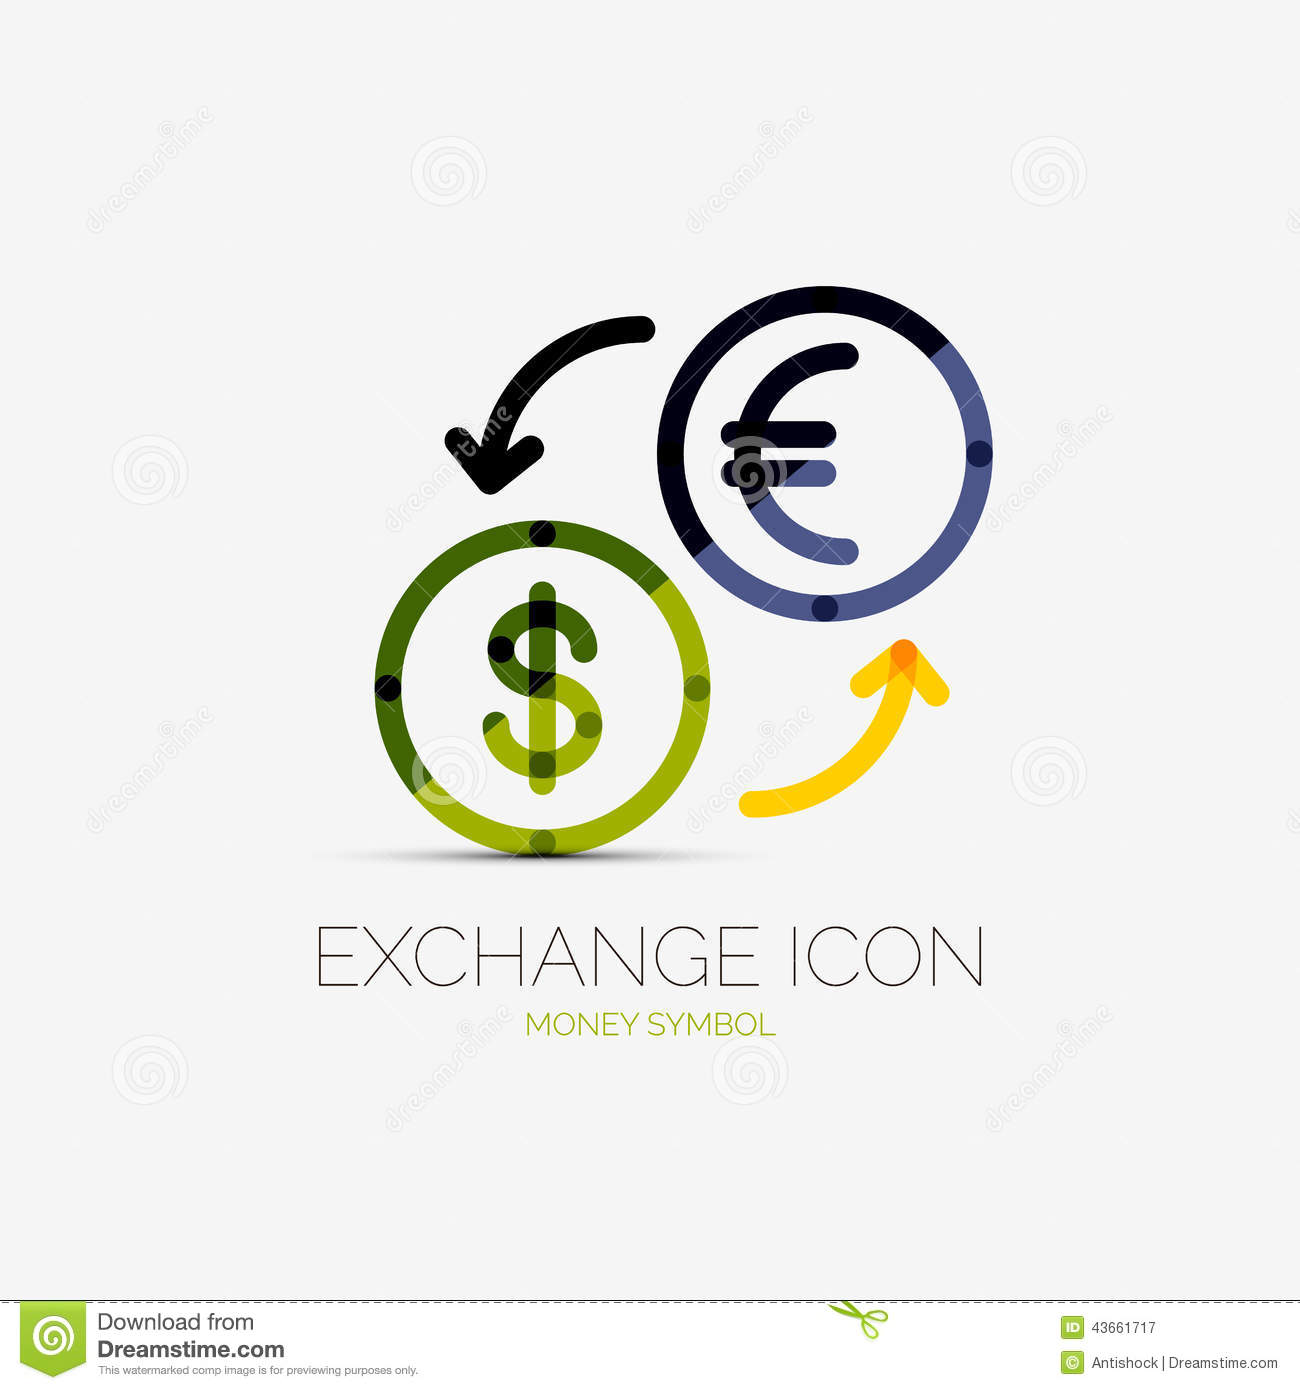 Currency exchange company logo business concept stock vector currency exchange company logo business concept biocorpaavc Images